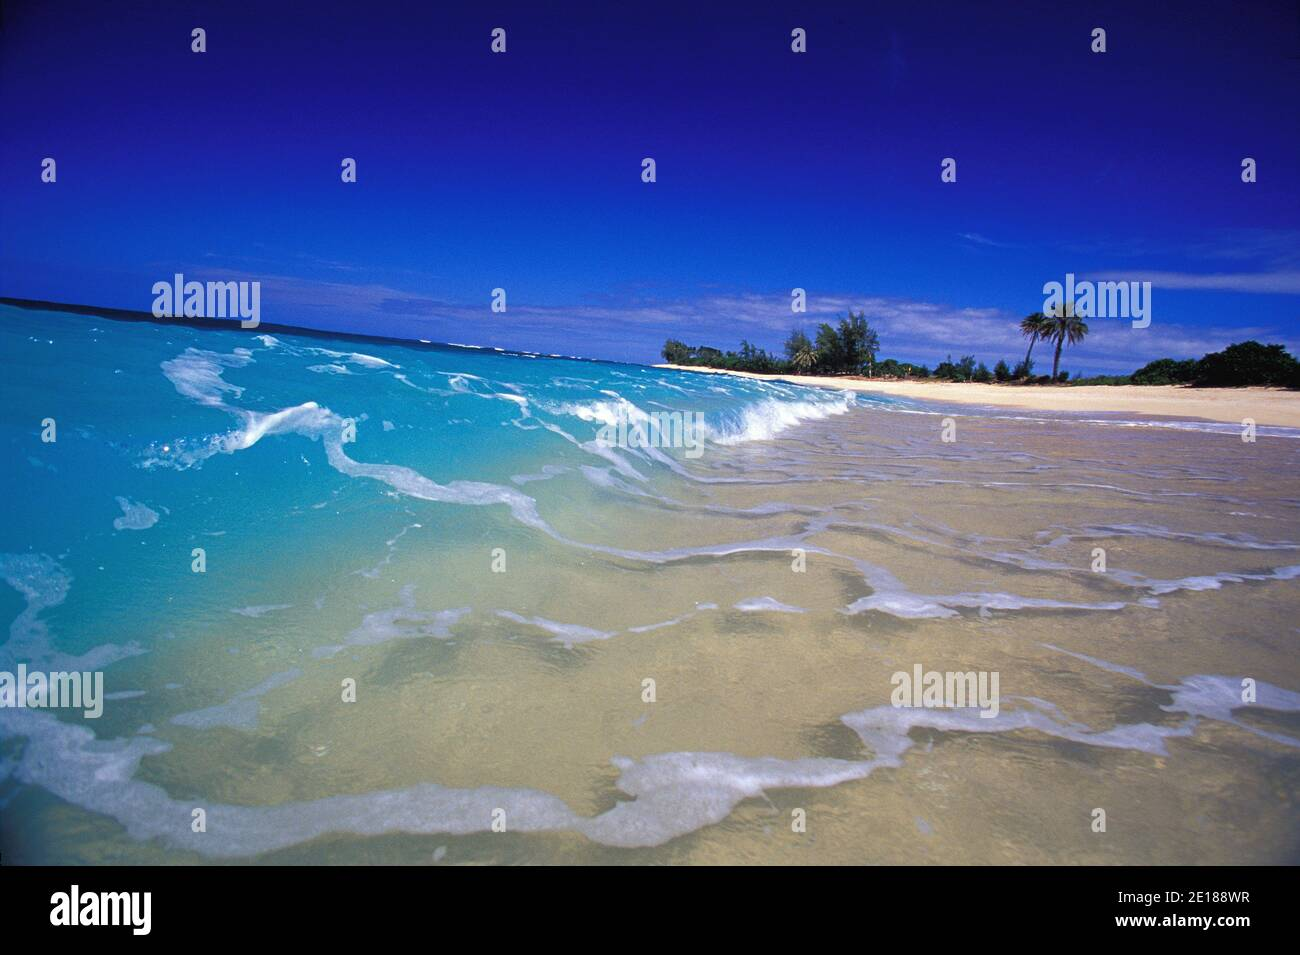 Waves breaking in clear blue water on white sand beach, Velzyland, North Shore, Oahu Stock Photo